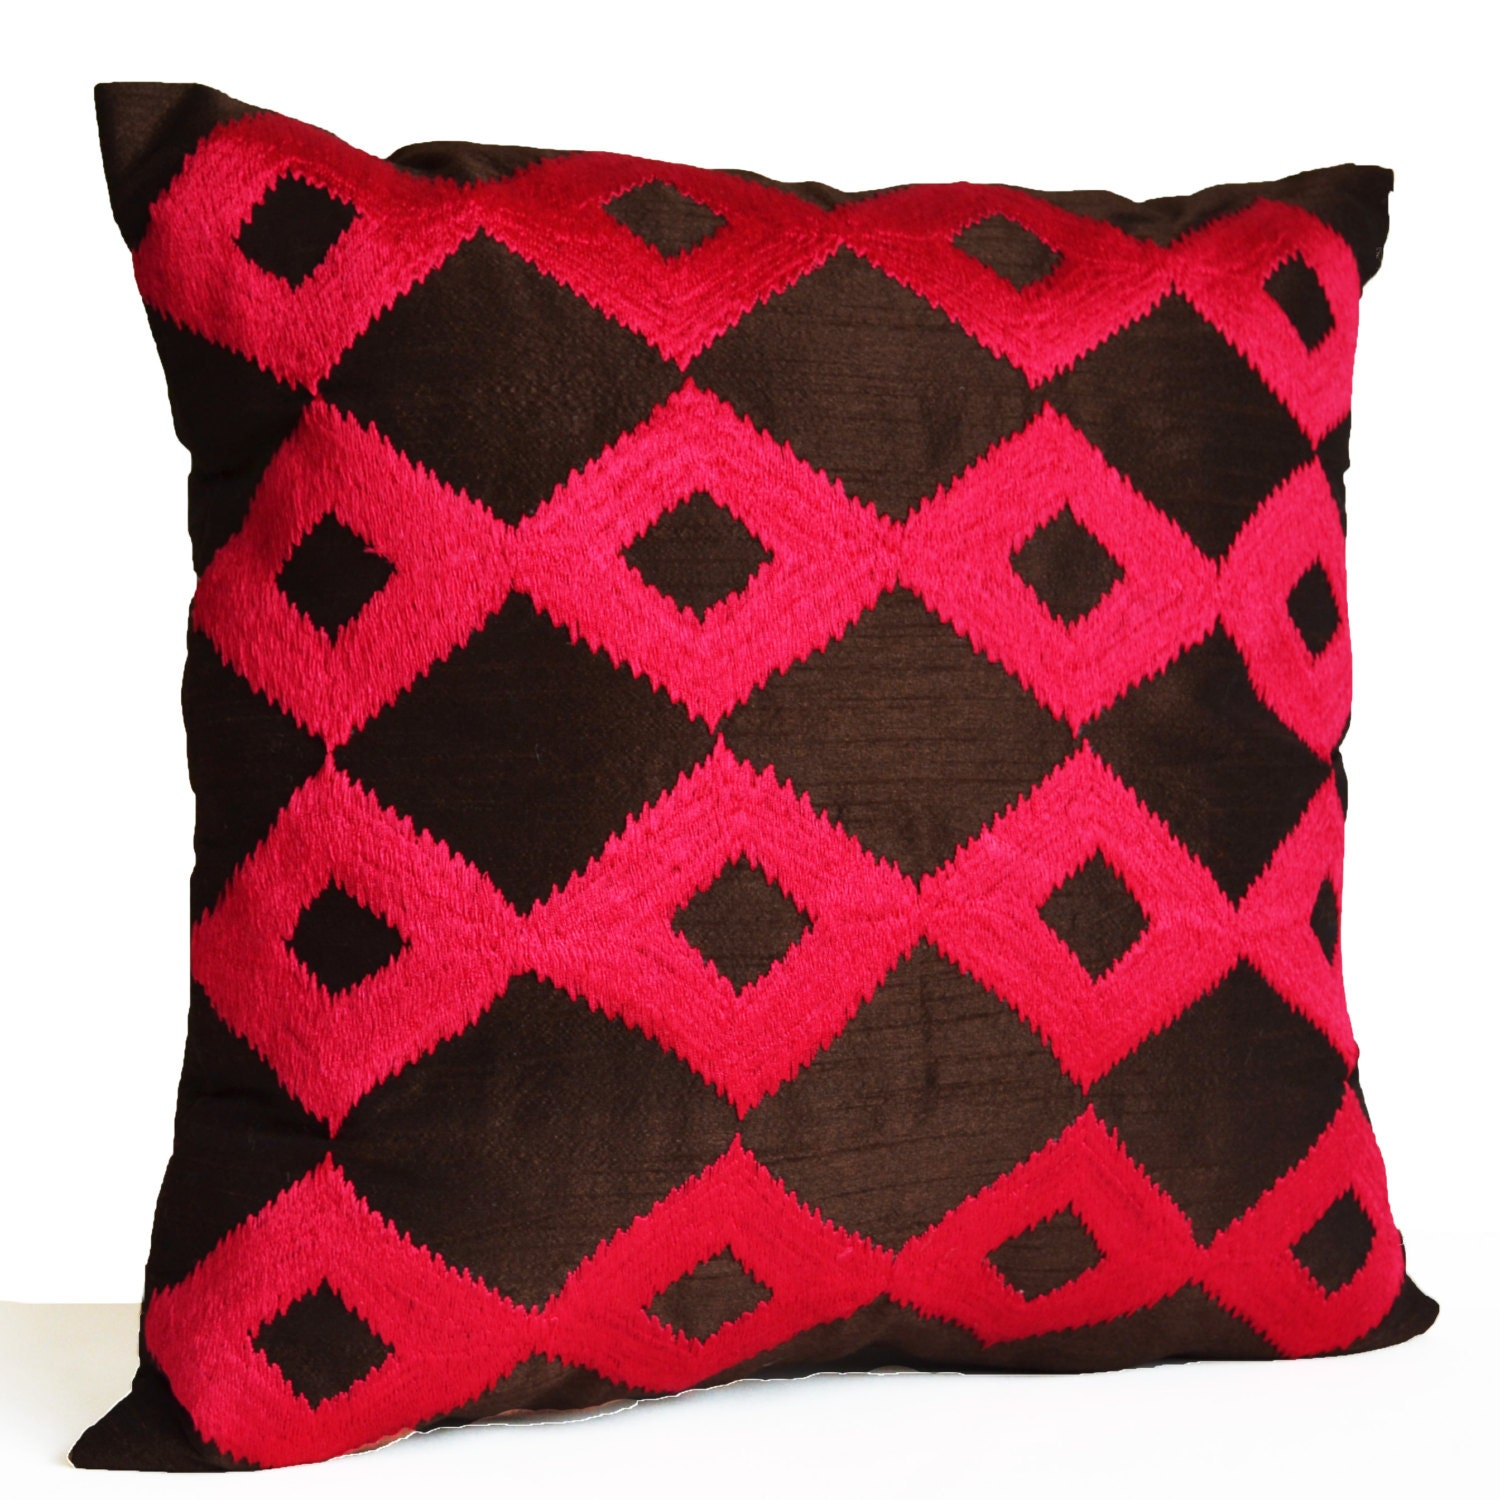 Pink Throw Pillows For Couch : Decorative Throw Pillow Brown Hot Pink Pillows Fuchsia Ikat